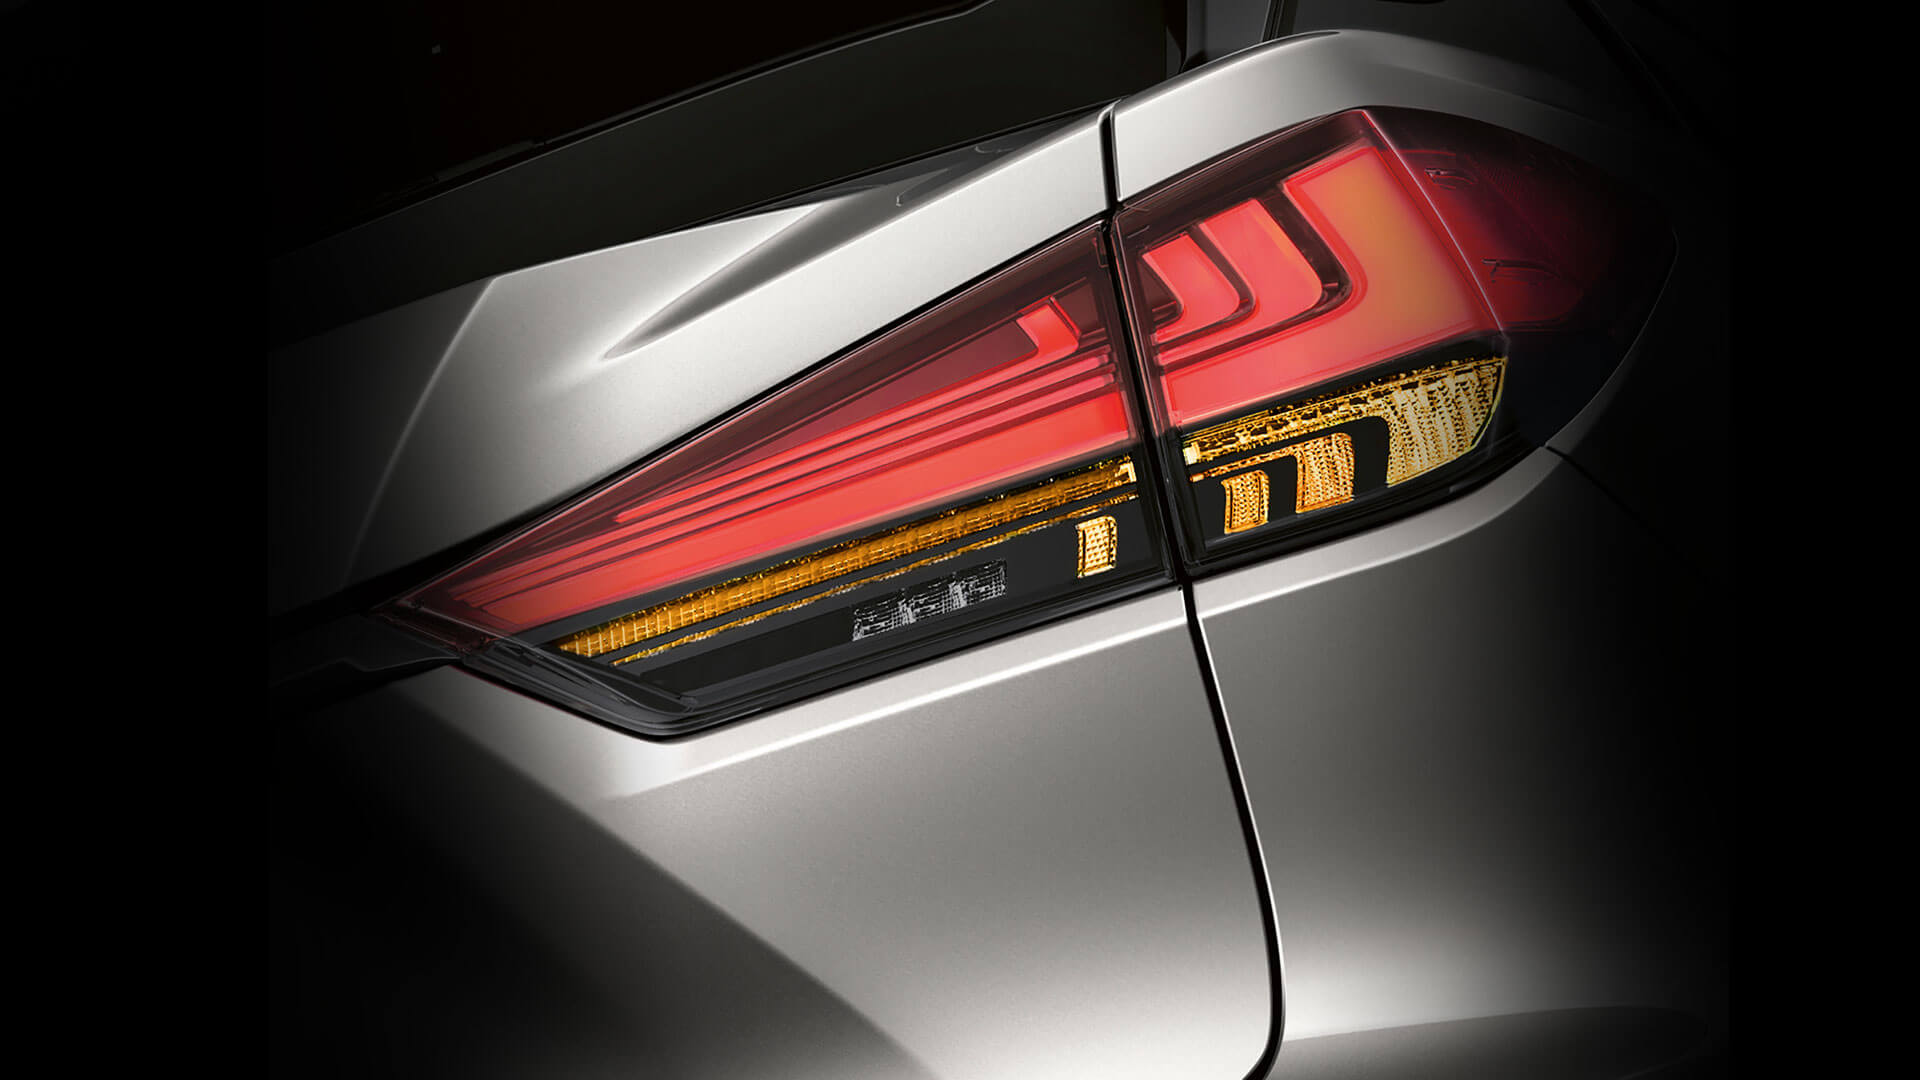 2019 lexus rxl hotspot rear lights